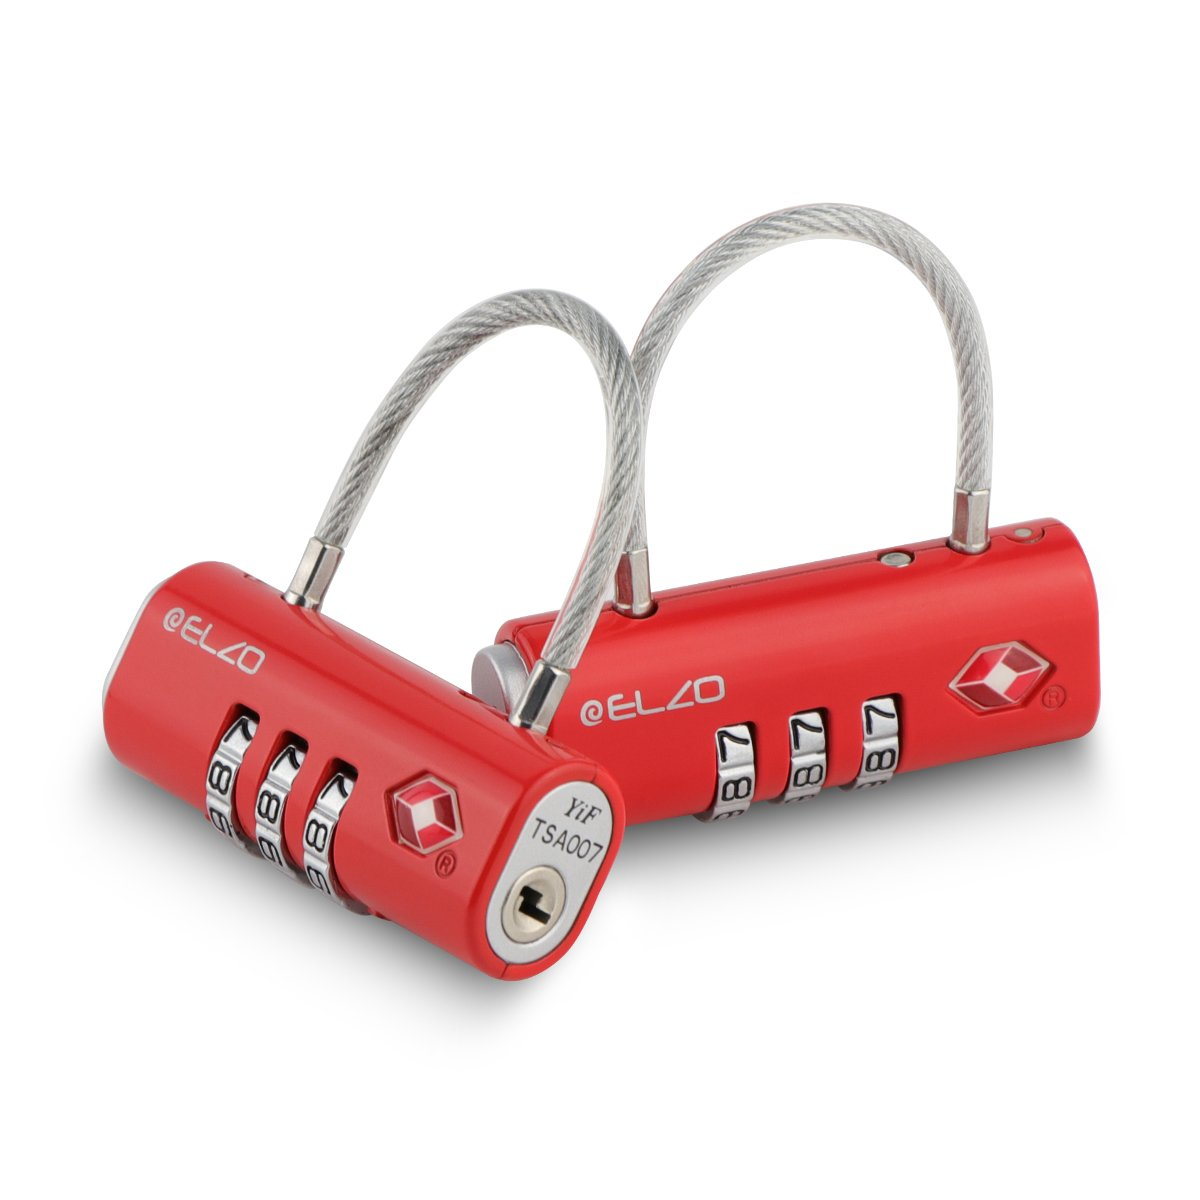 Elzo TSA Approved Luggage Lock, Easy Read Dials and 3 Digits Combination - 2 Pack